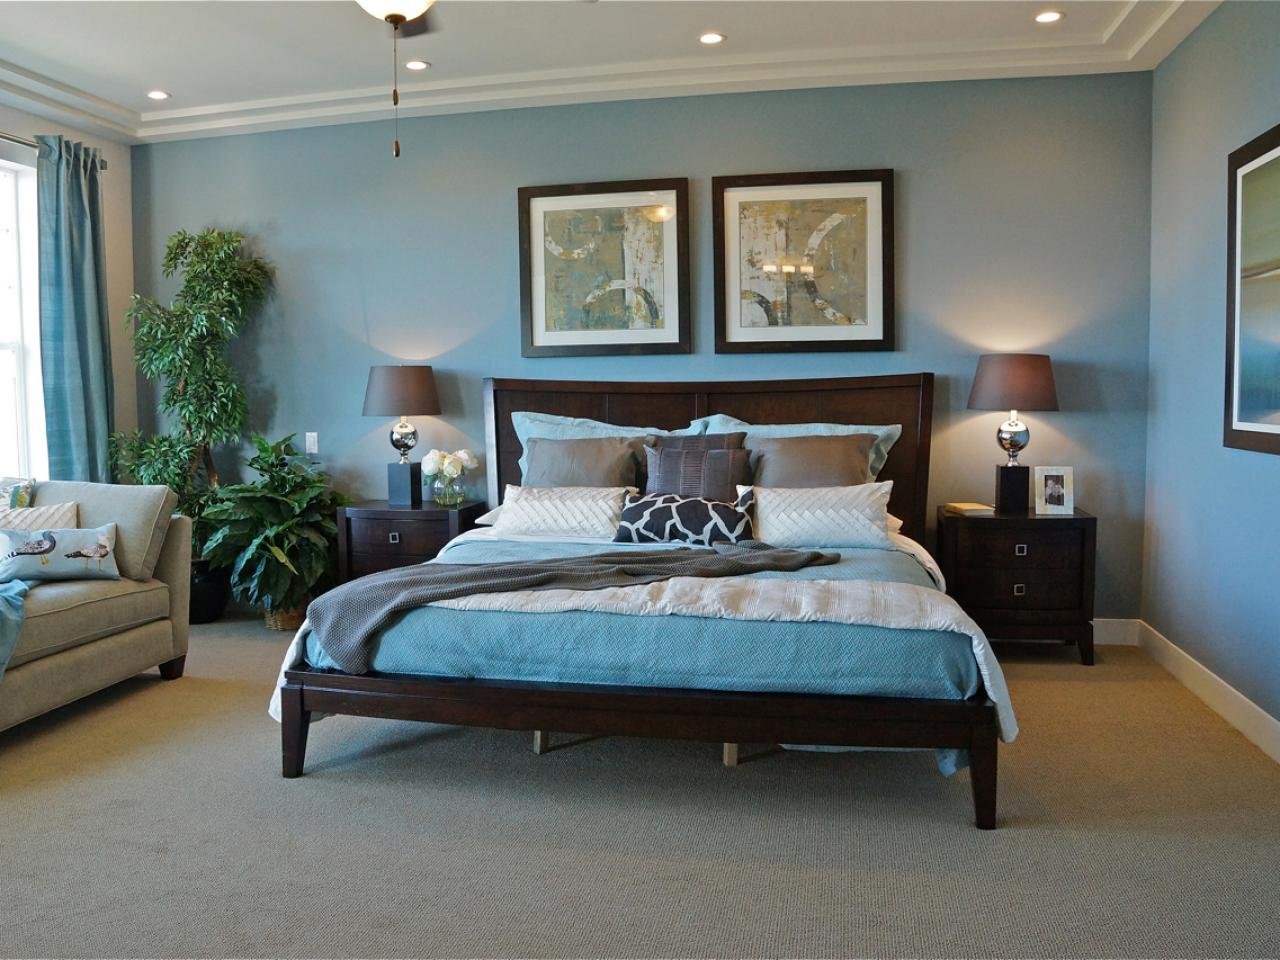 25 Blue and Brown Bedrooms Decor & Designs   Decor Or Design